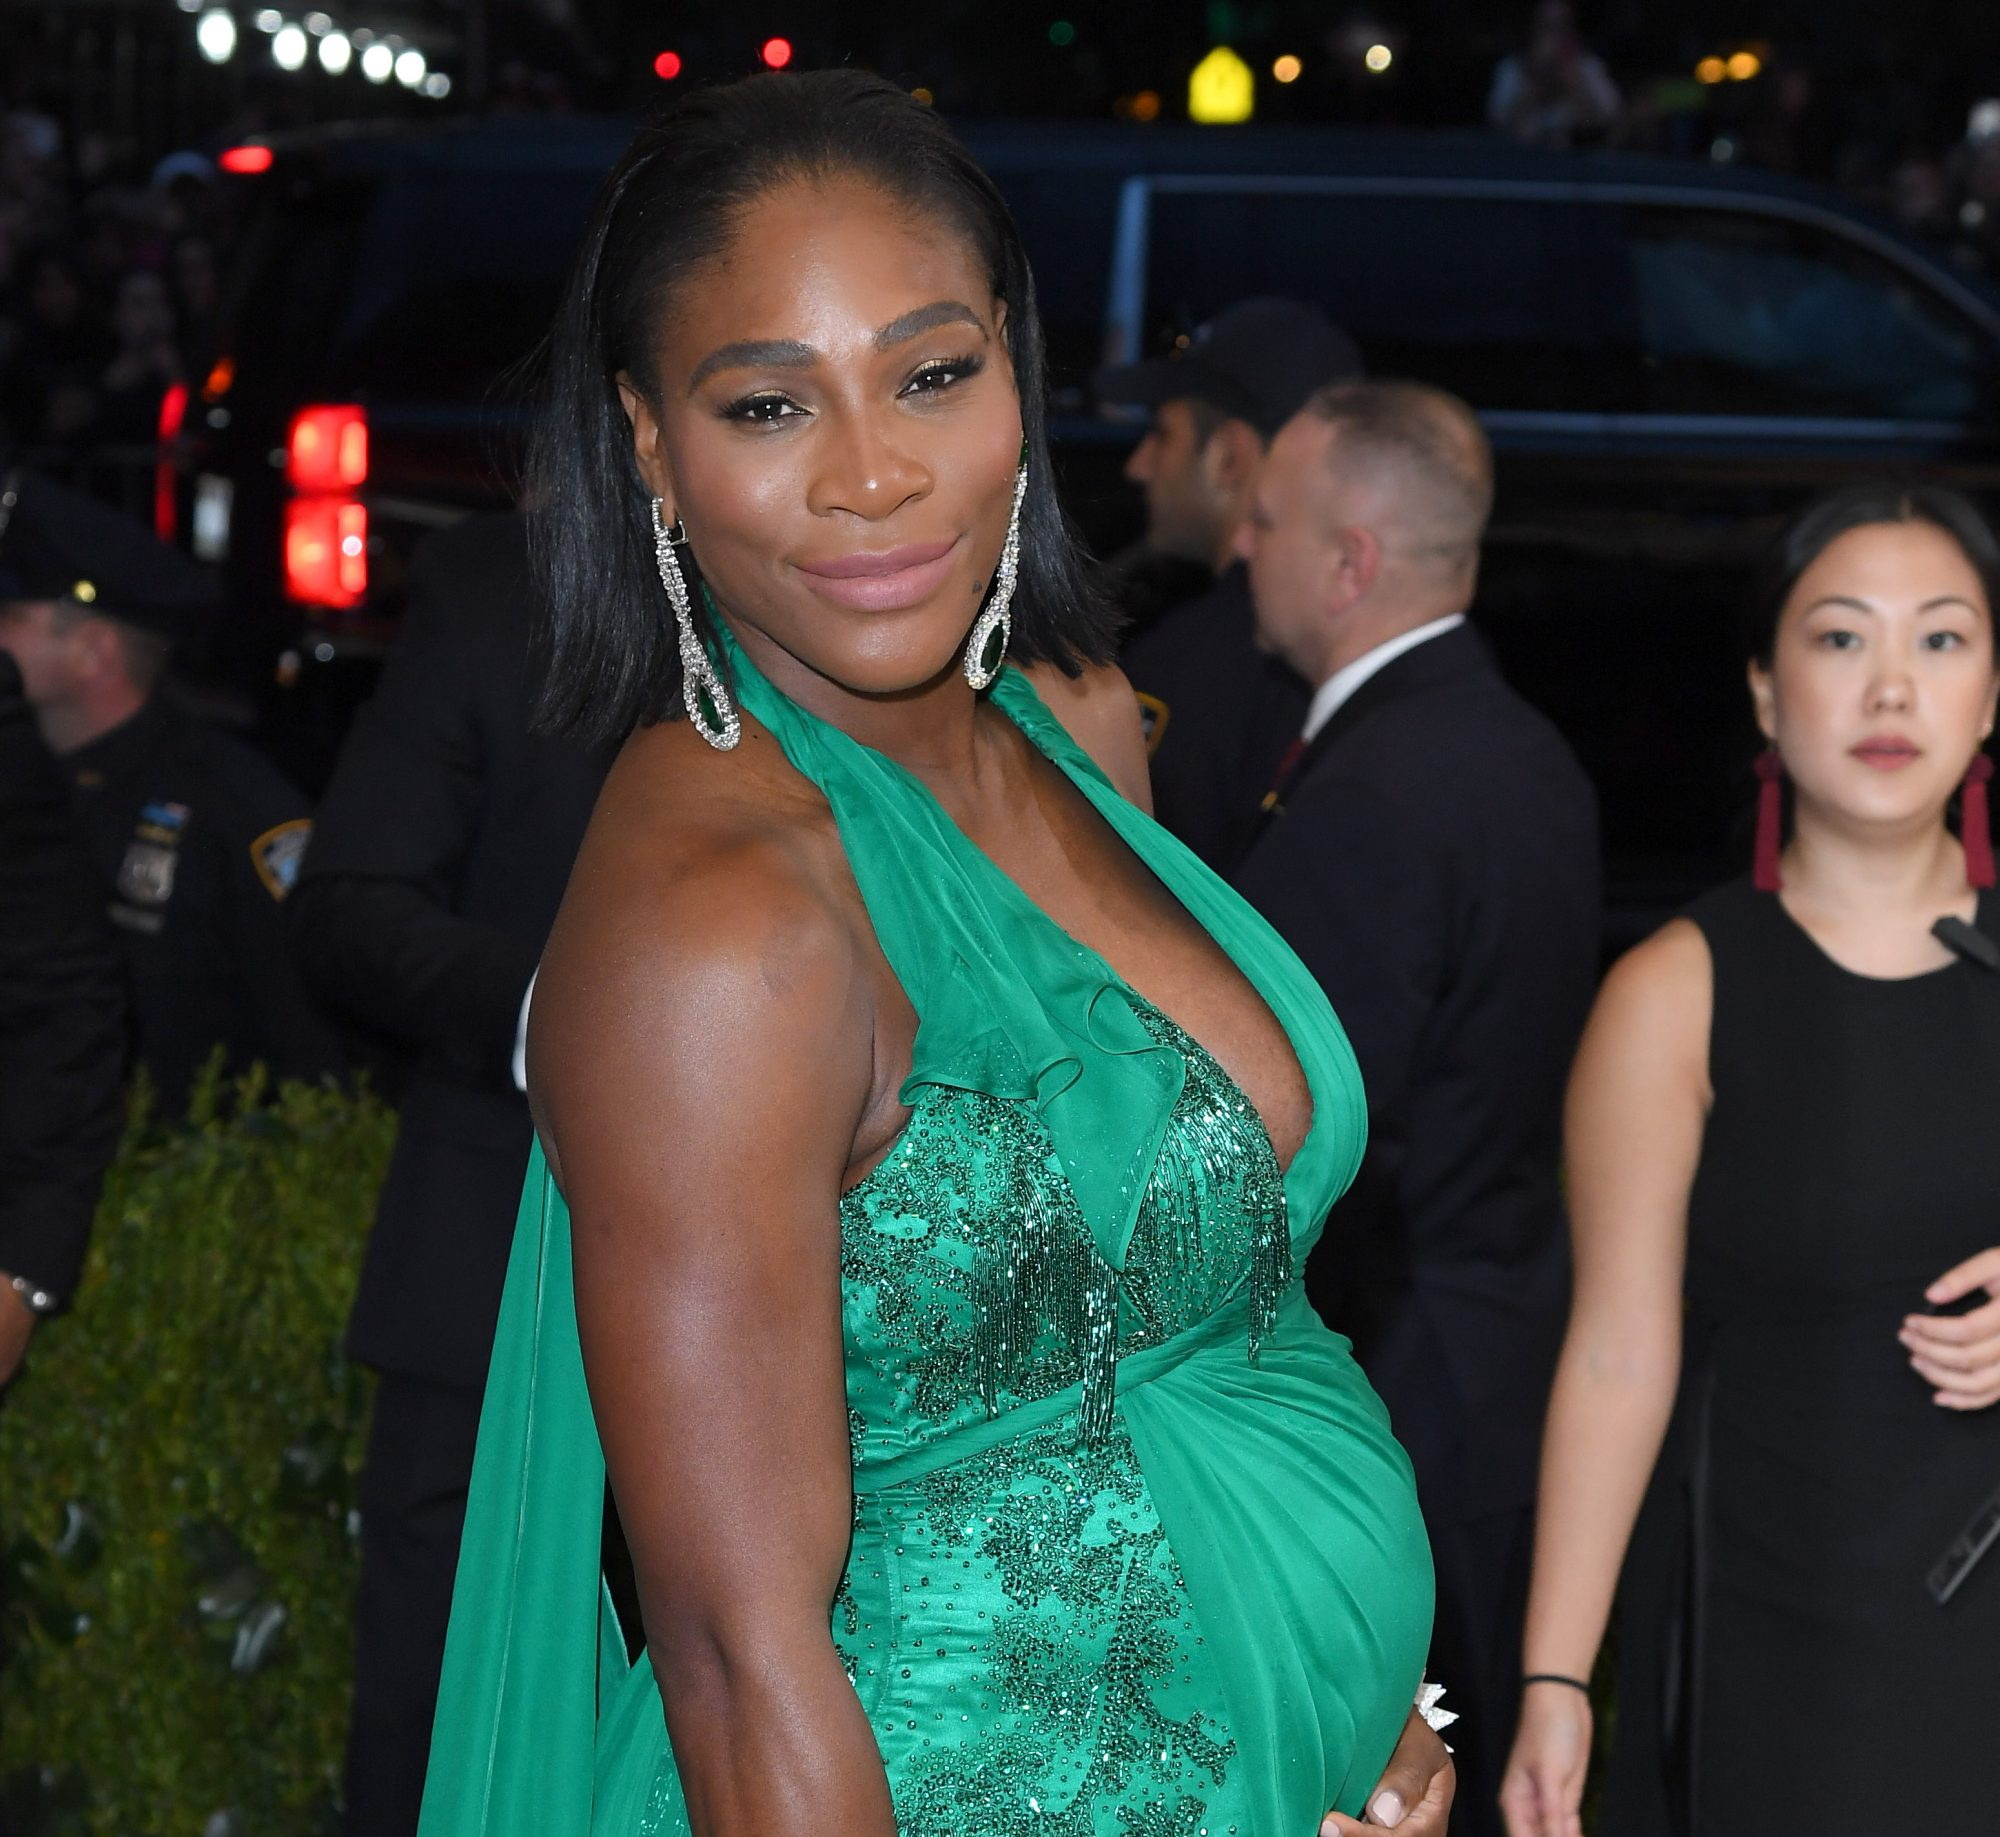 Image of Serena Williams